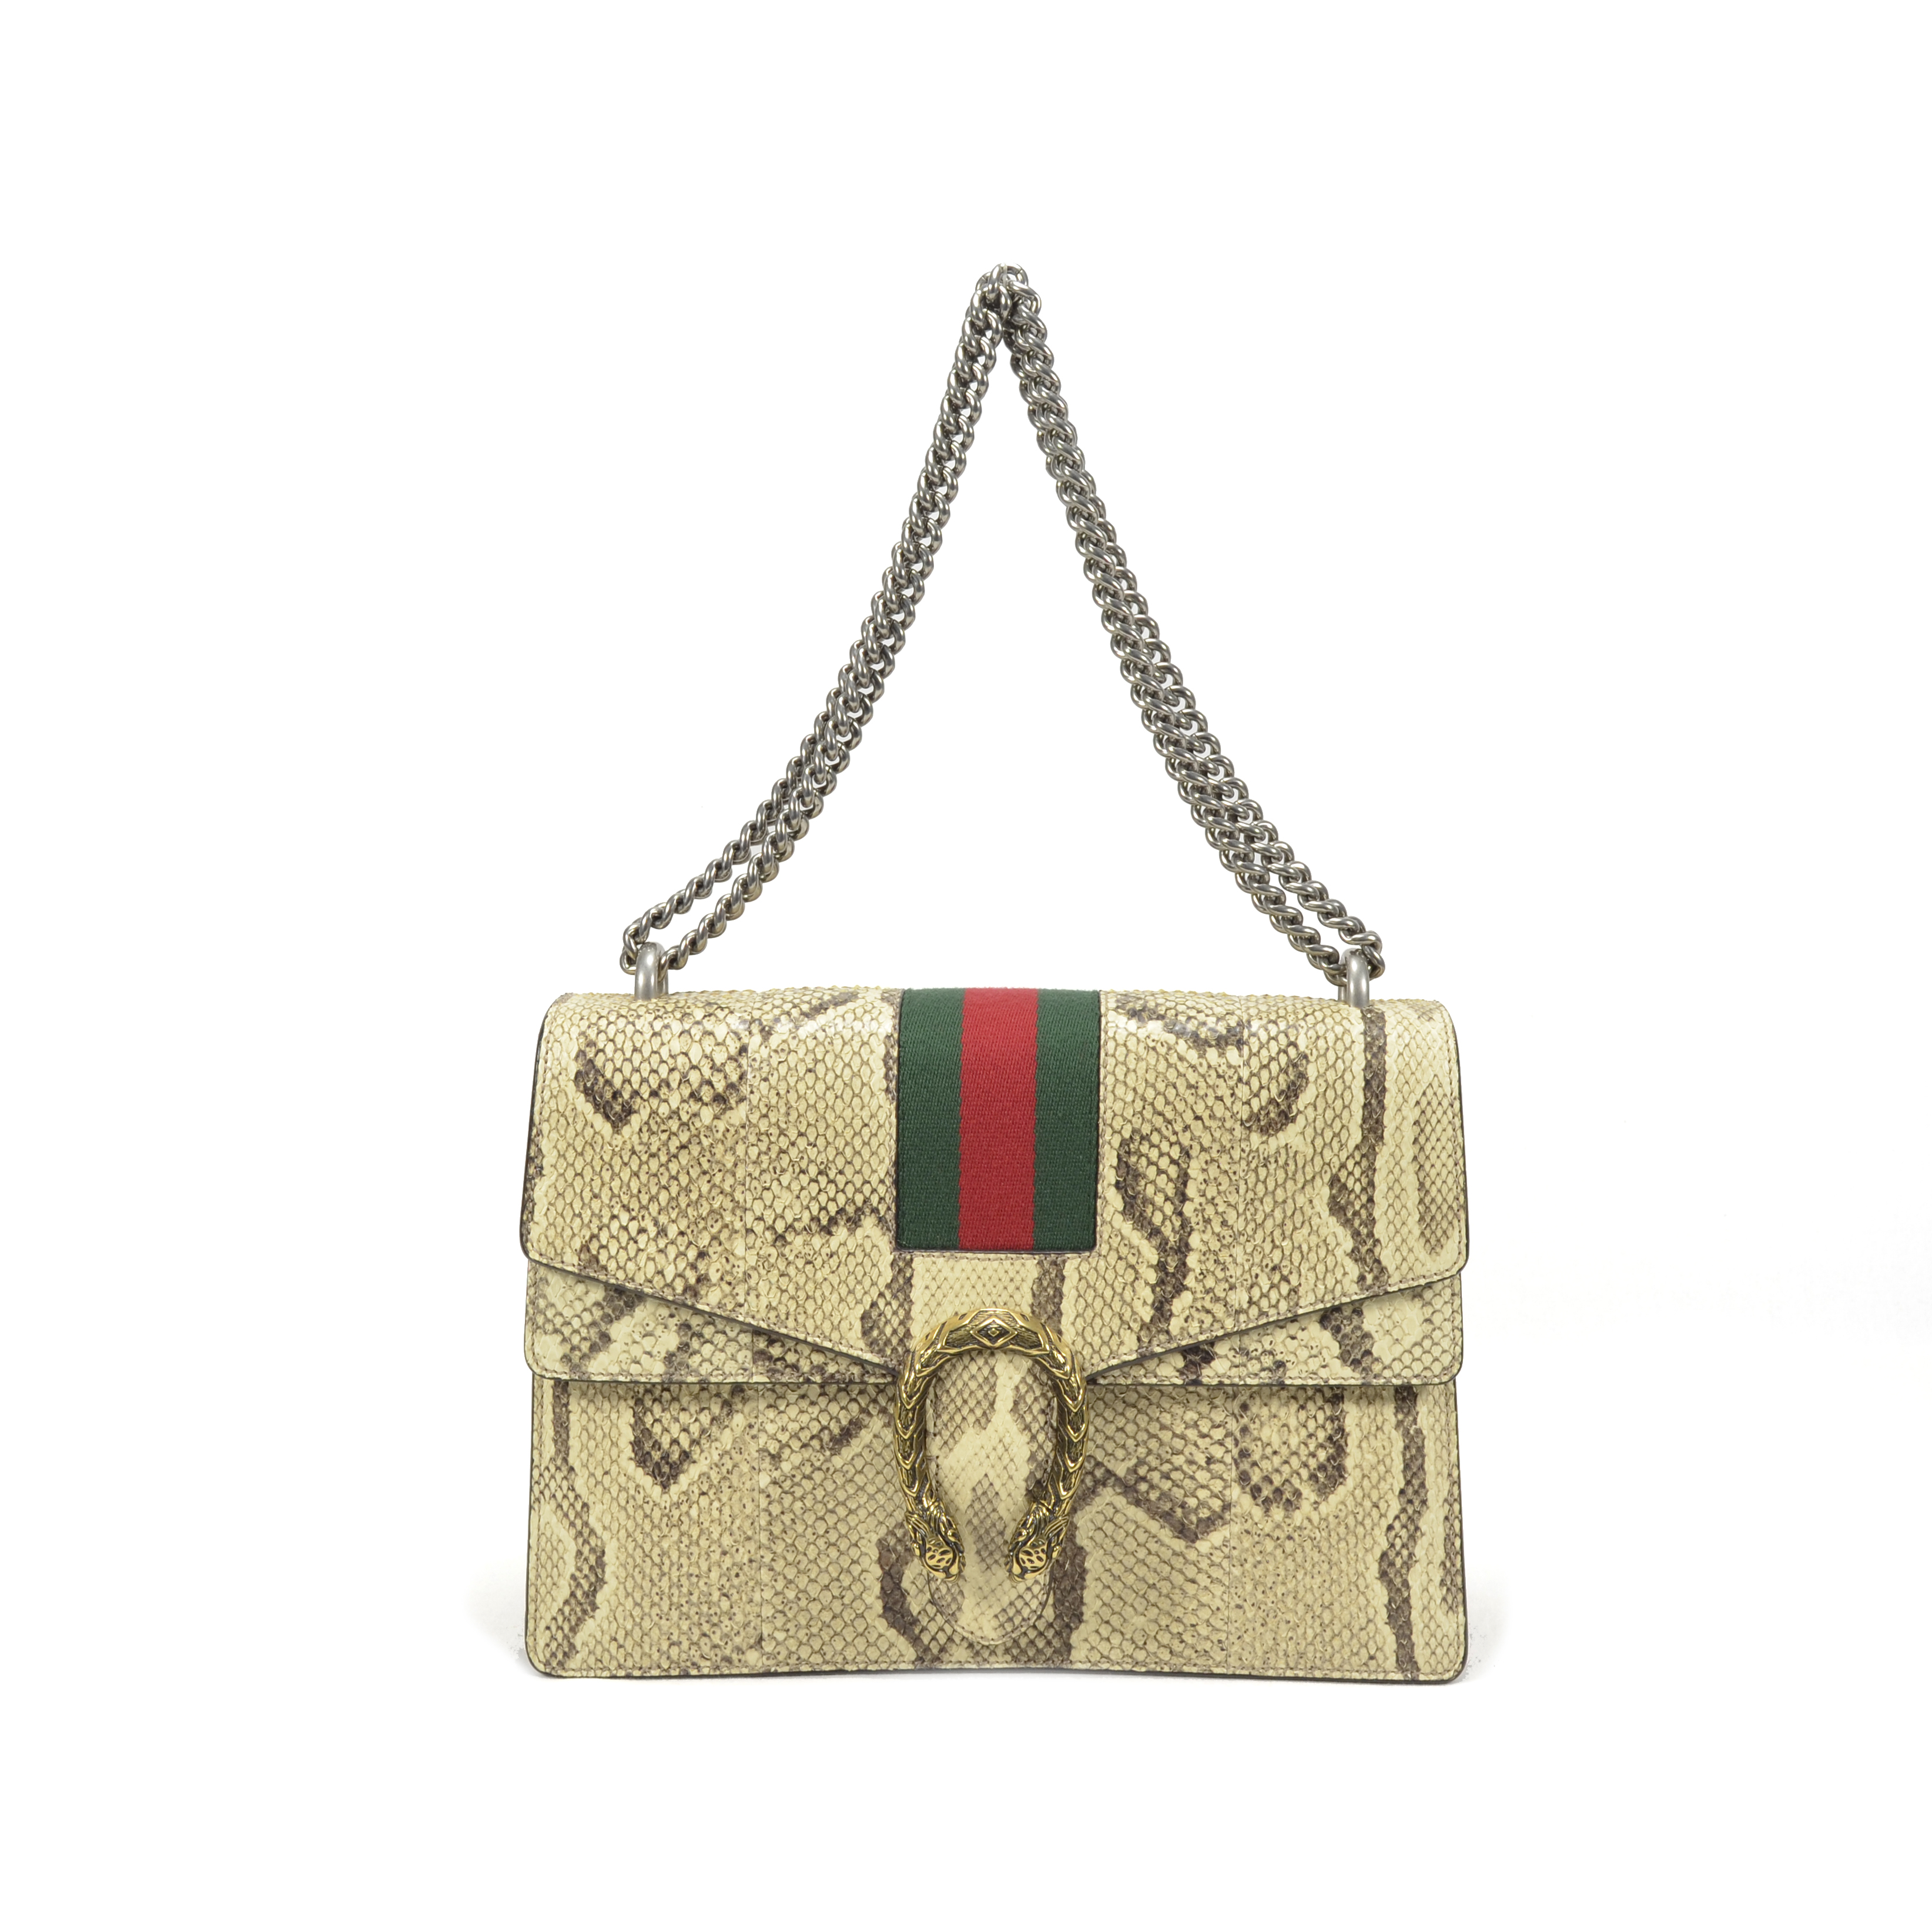 c4021a65be43 Authentic Second Hand Gucci Dionysus Python Shoulder Bag (PSS-051-00162) |  THE FIFTH COLLECTION